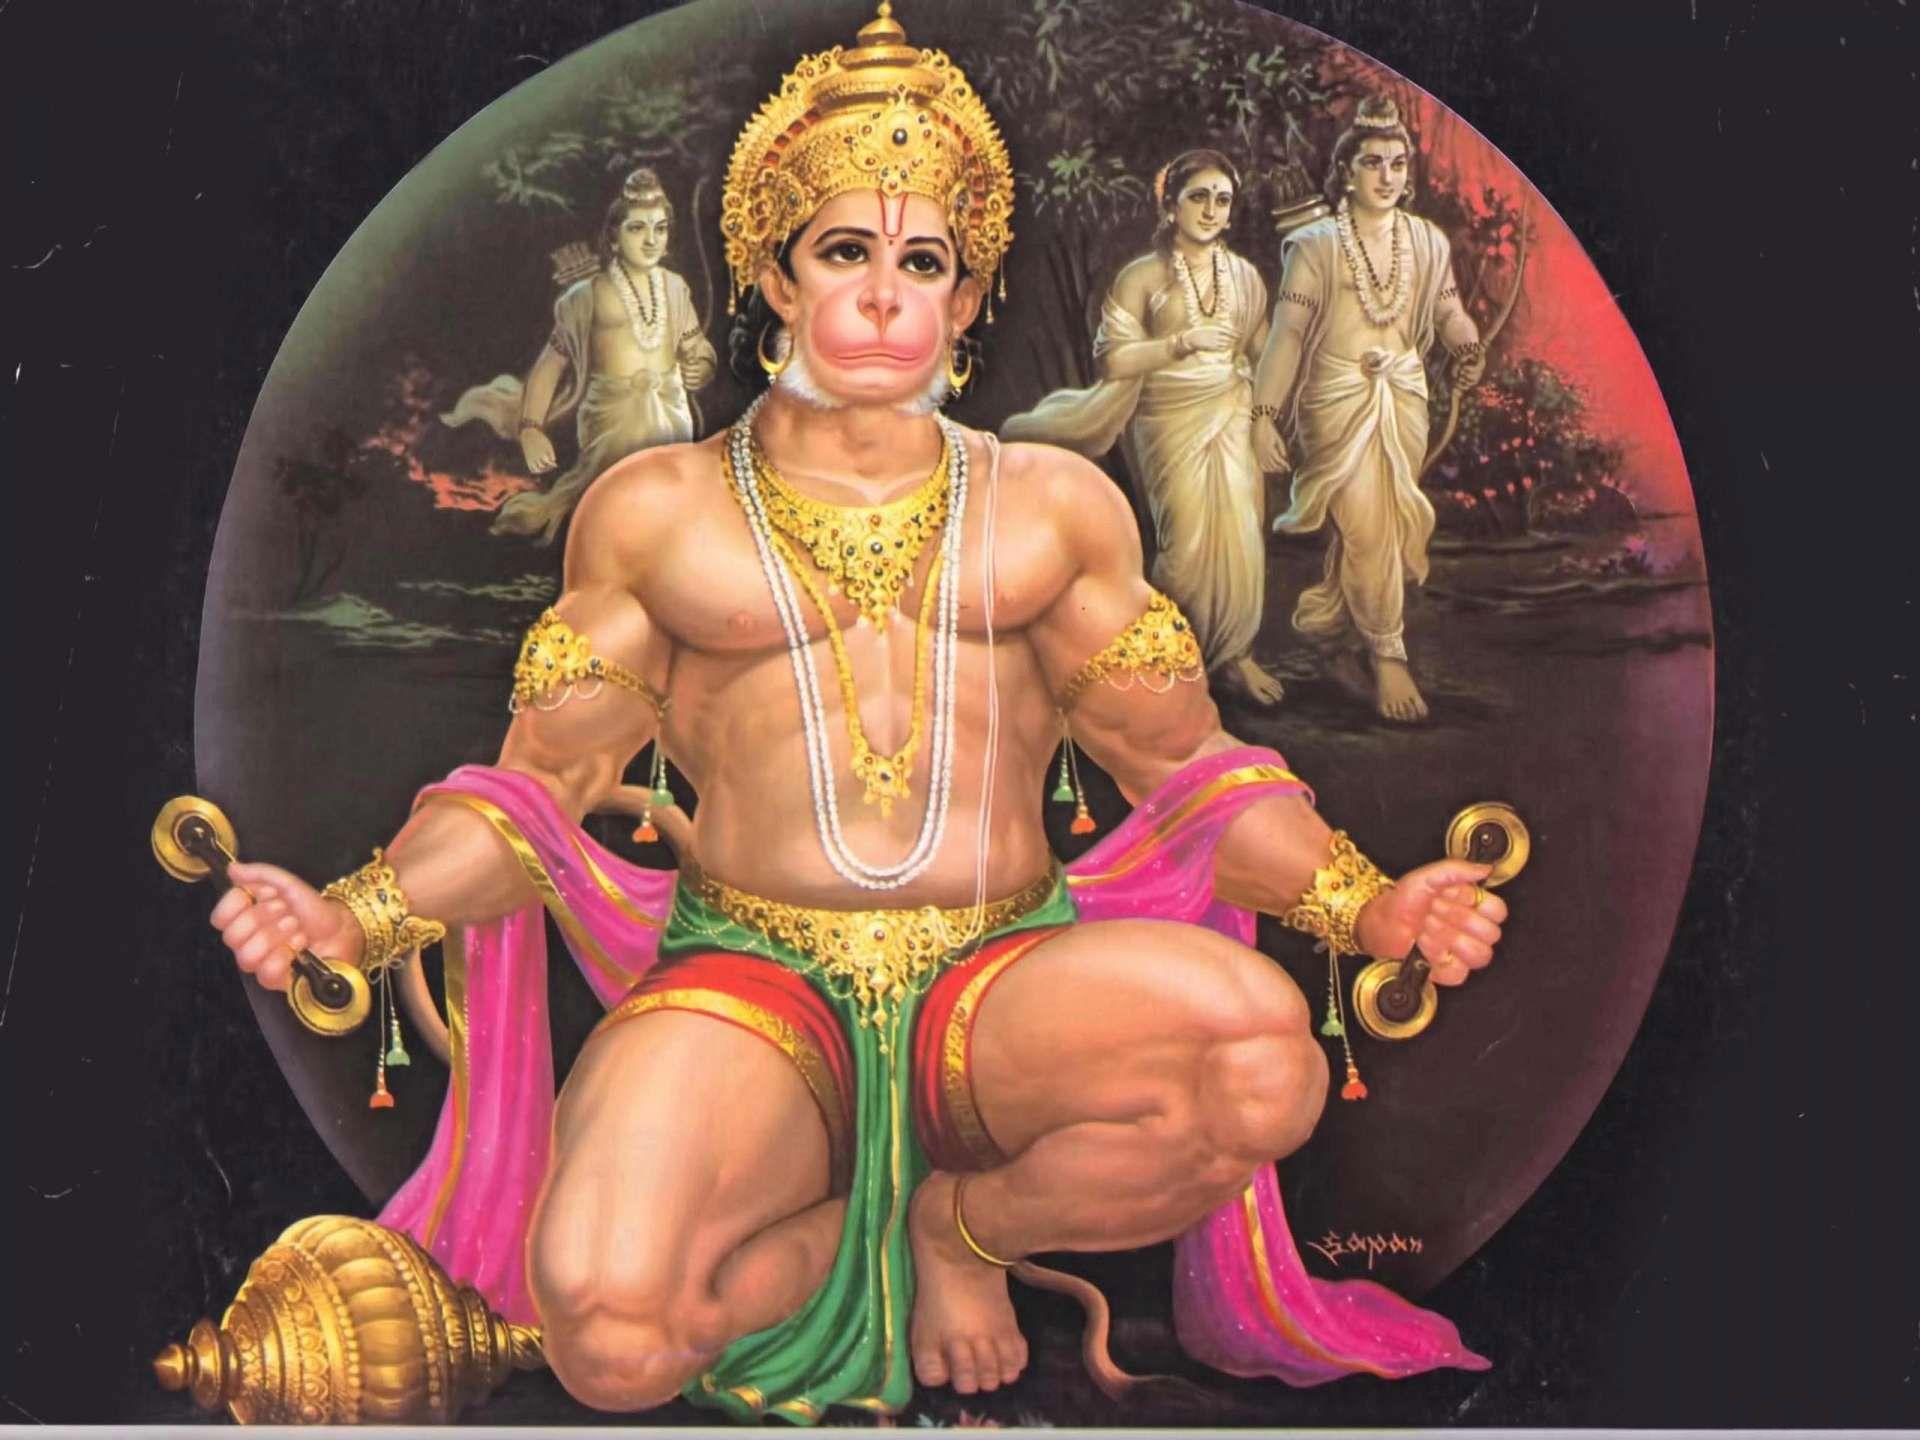 Free download desktop Lord Hanuman HD wallpaper, photos & image